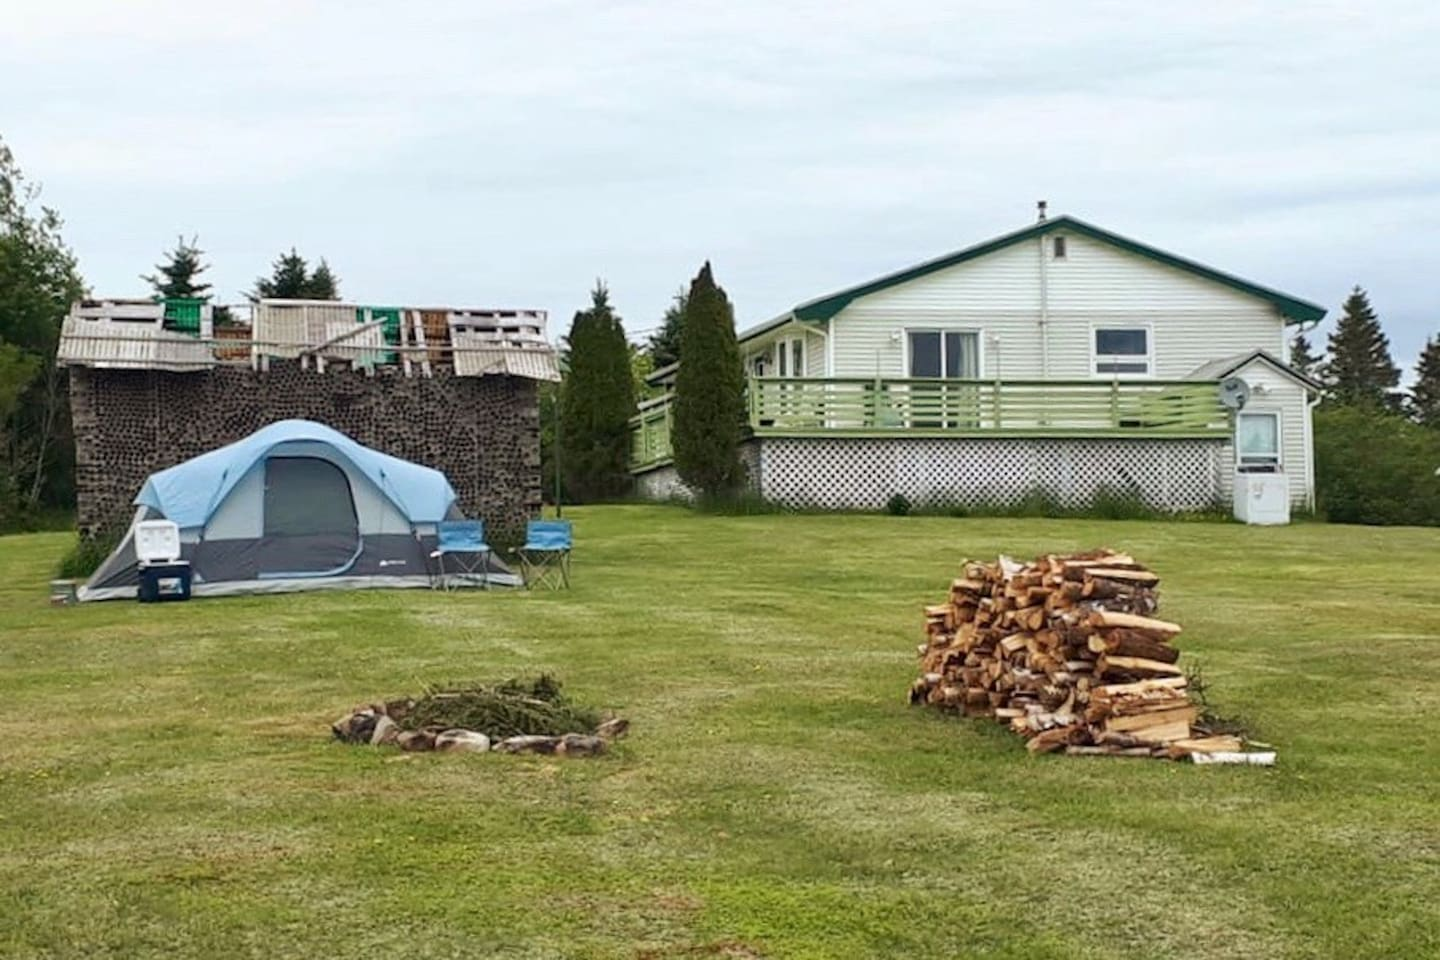 Lovely spacious tent located next to our 30 year old bottle house. Chairs, cooler, lantern, flashlight, air mattress and bedding provided to enjoy the great outdoors. Feel free to hang out and relax. Washroom facilities and shower located inside.